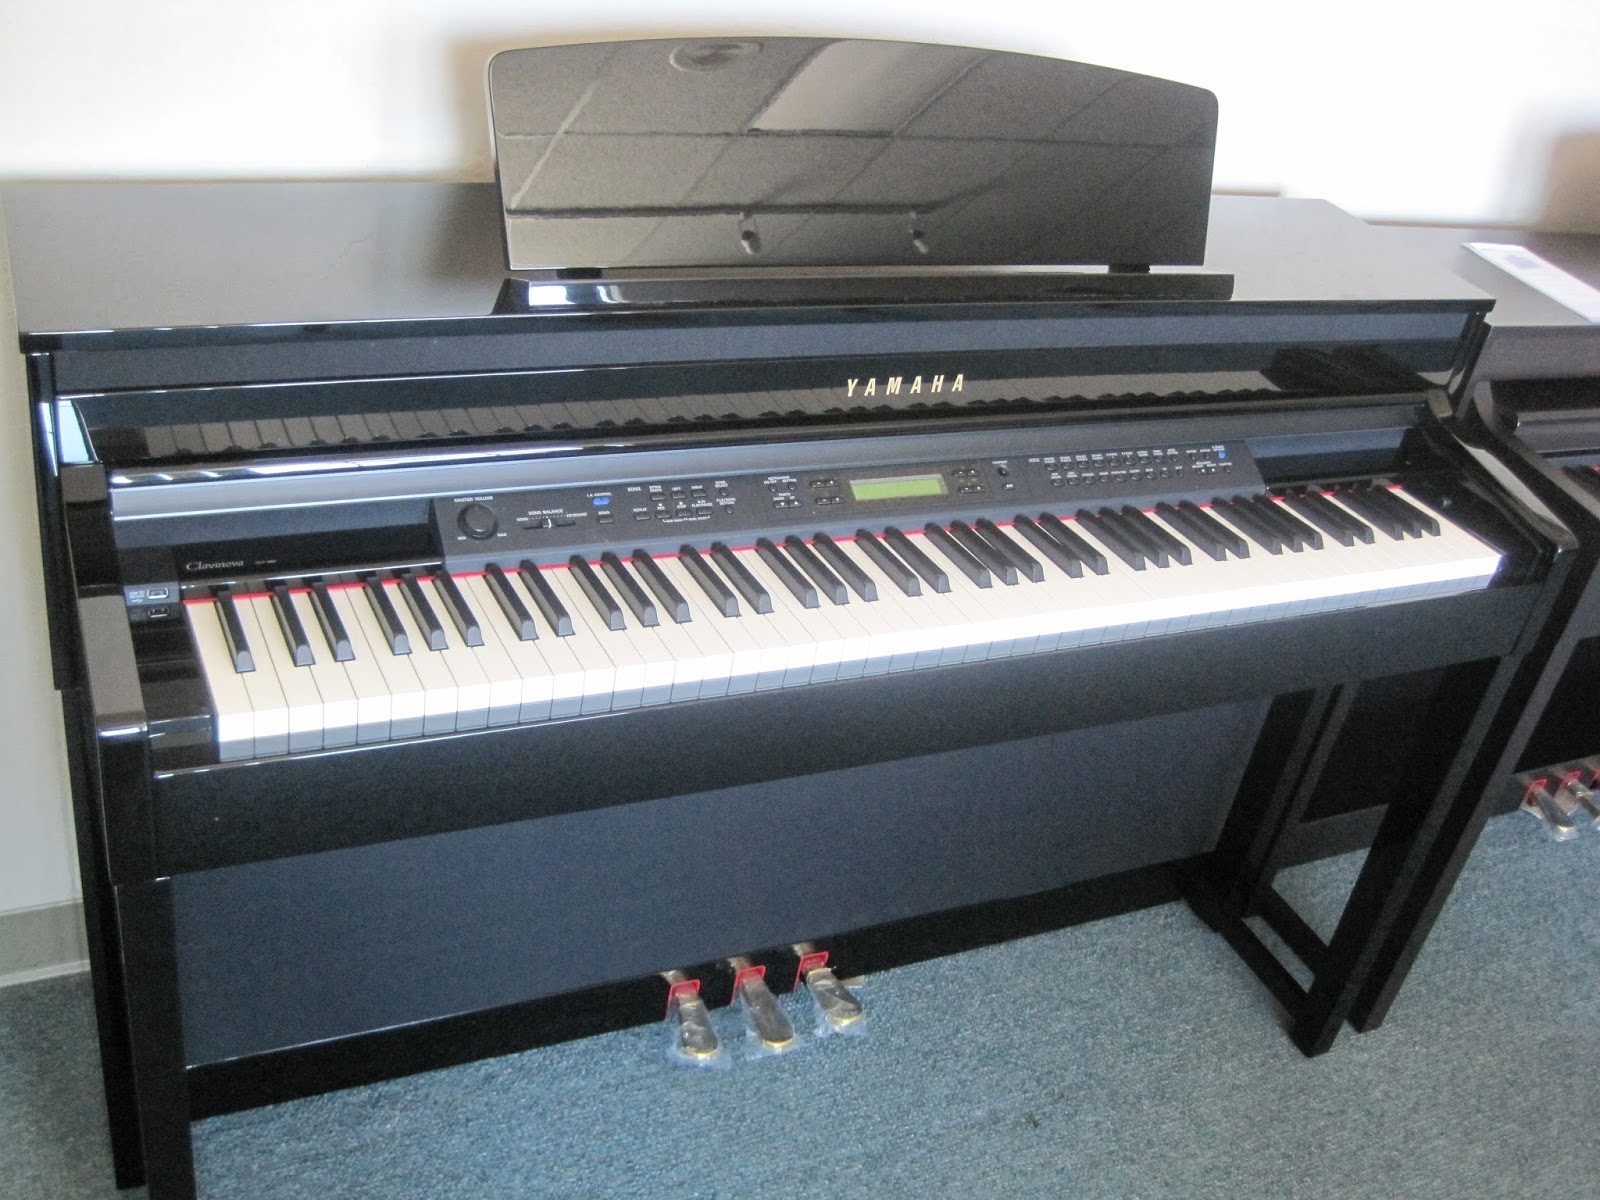 Az piano reviews review yamaha clp430 clp440 clp470 for Yamaha clavinova price list